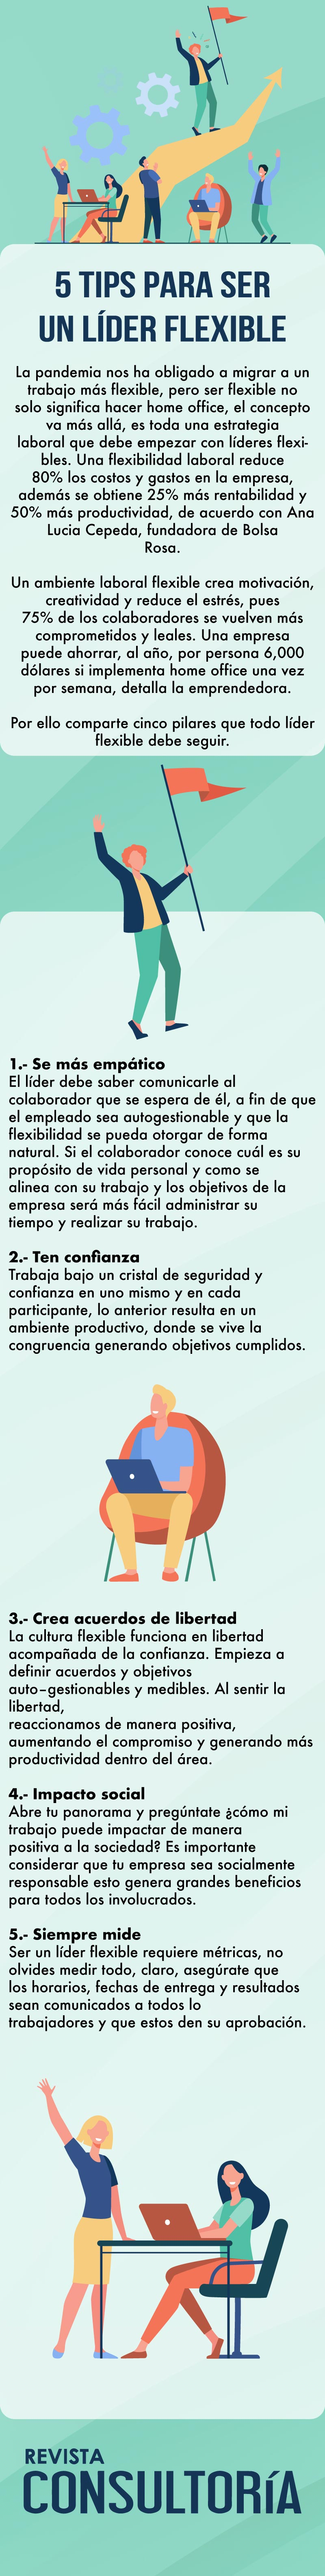 a 5 - 5 tips para ser un líder flexible